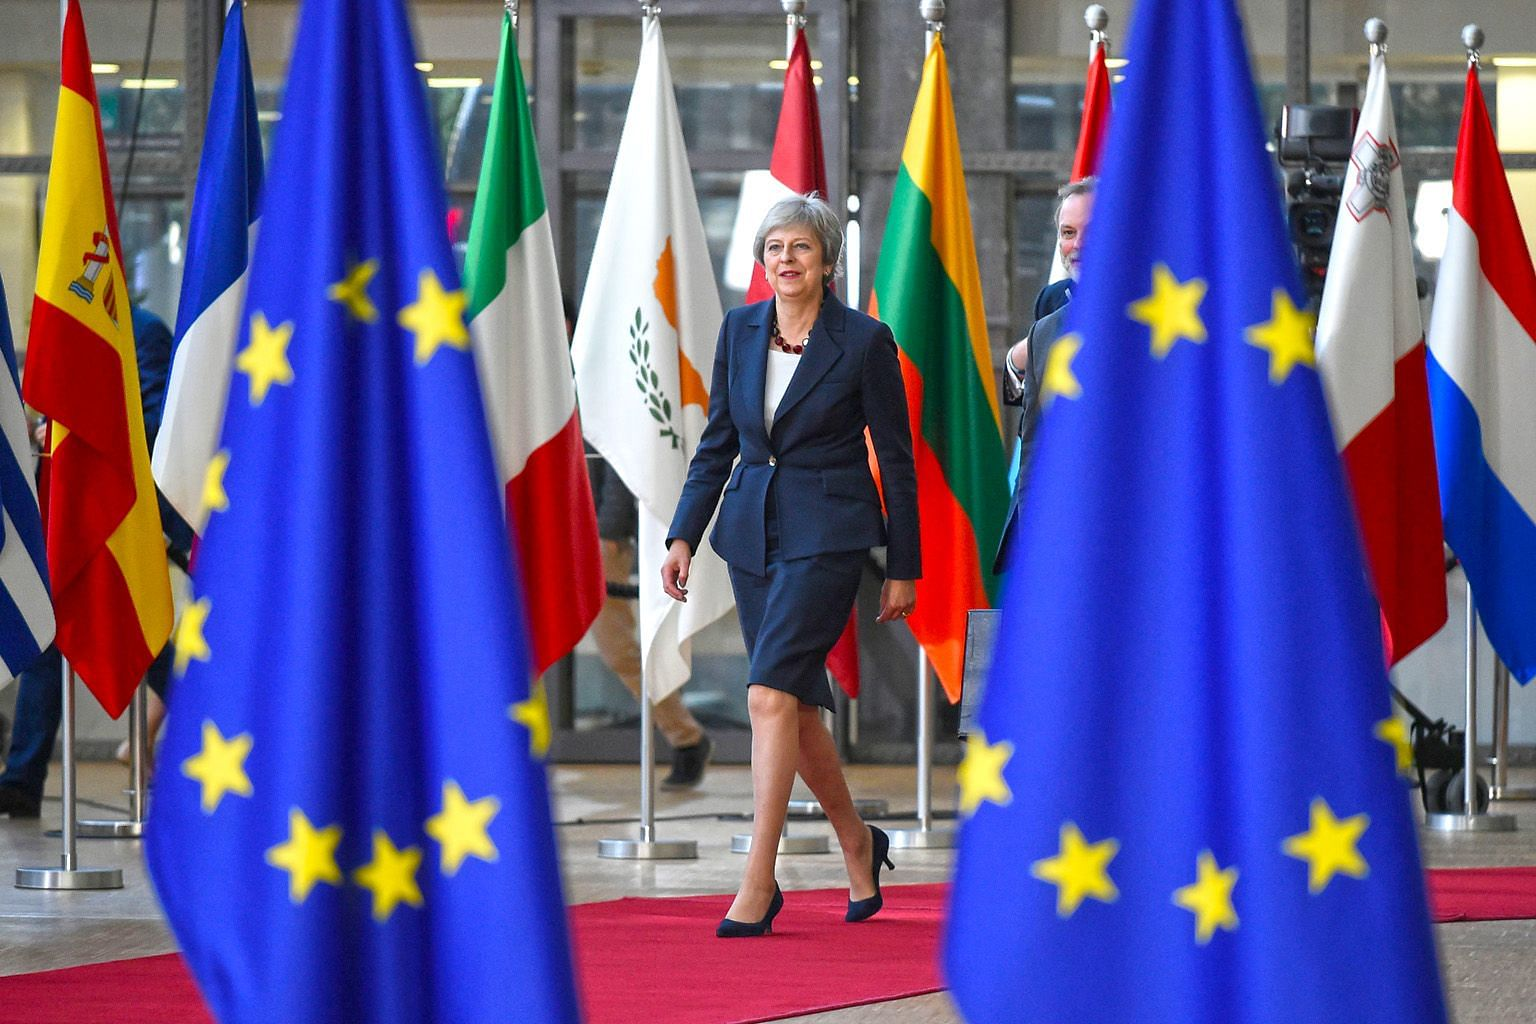 British Prime Minister Theresa May is drawing flak from hardcore Brexit backers and pro-EU loyalists alike for considering the European Union's proposal to extend the post-Brexit transition period until December 2021, from the current plan of the end